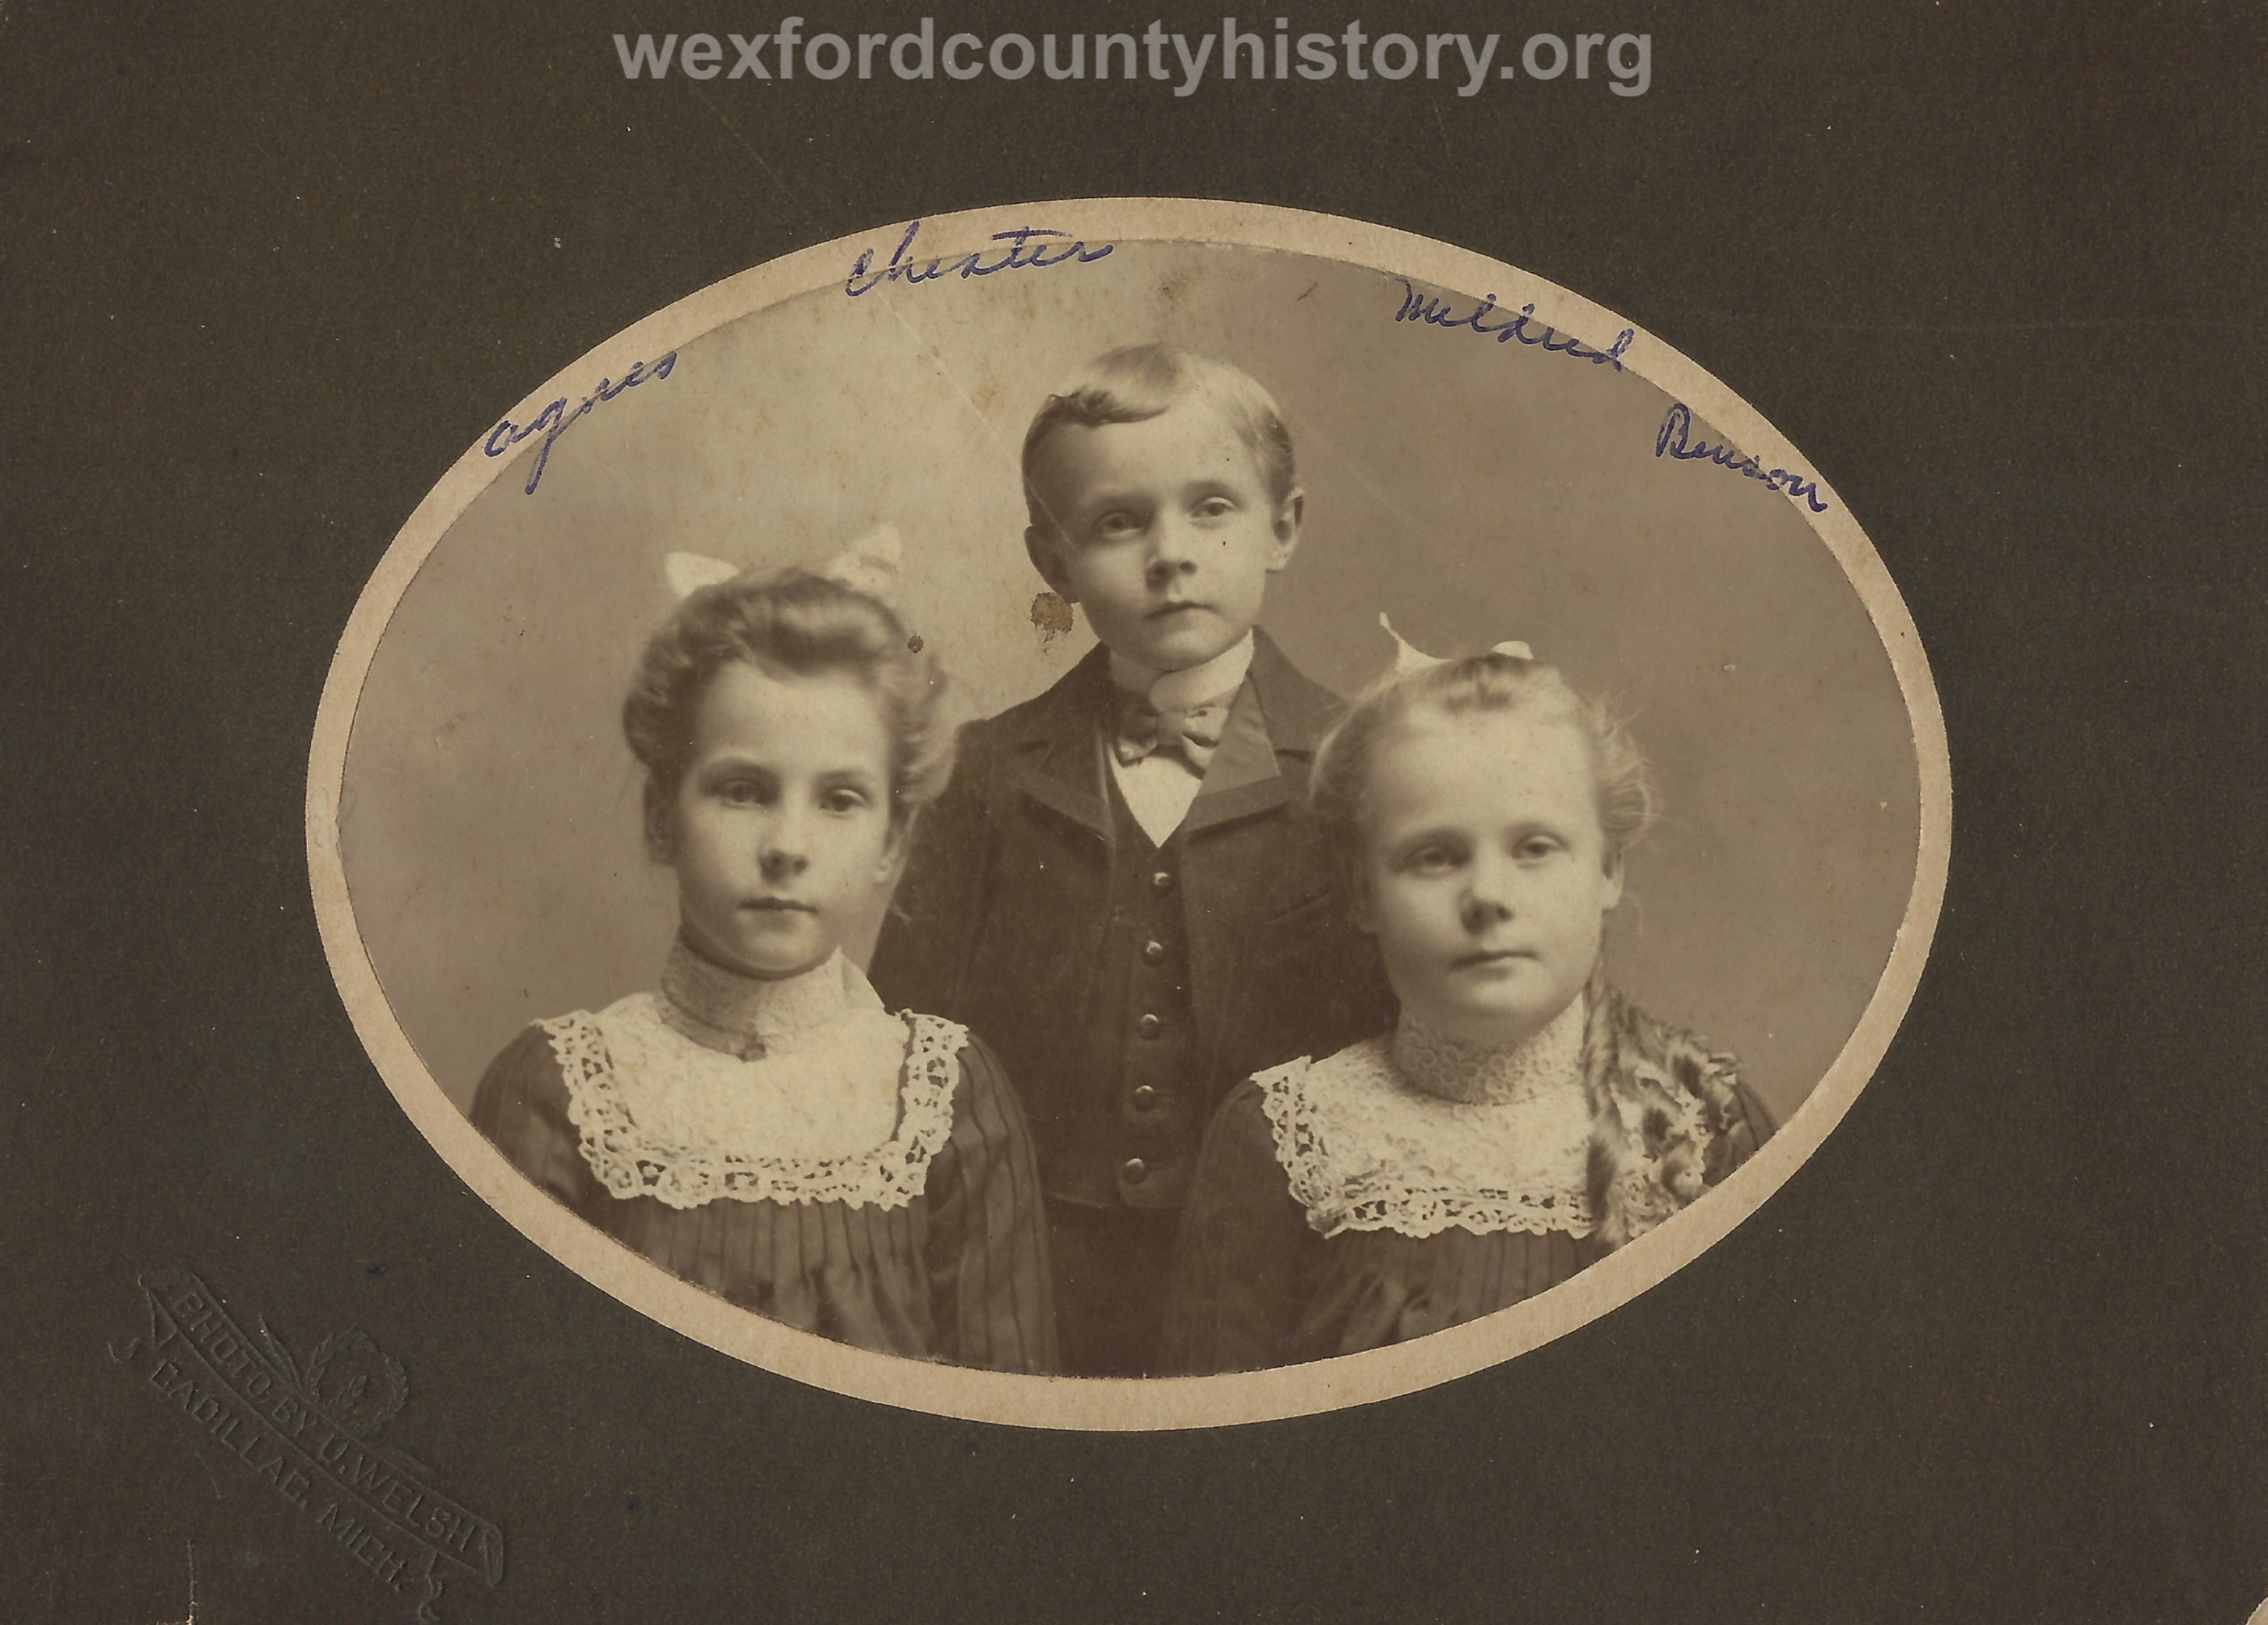 Agnes, Chester, and Mildred Benson